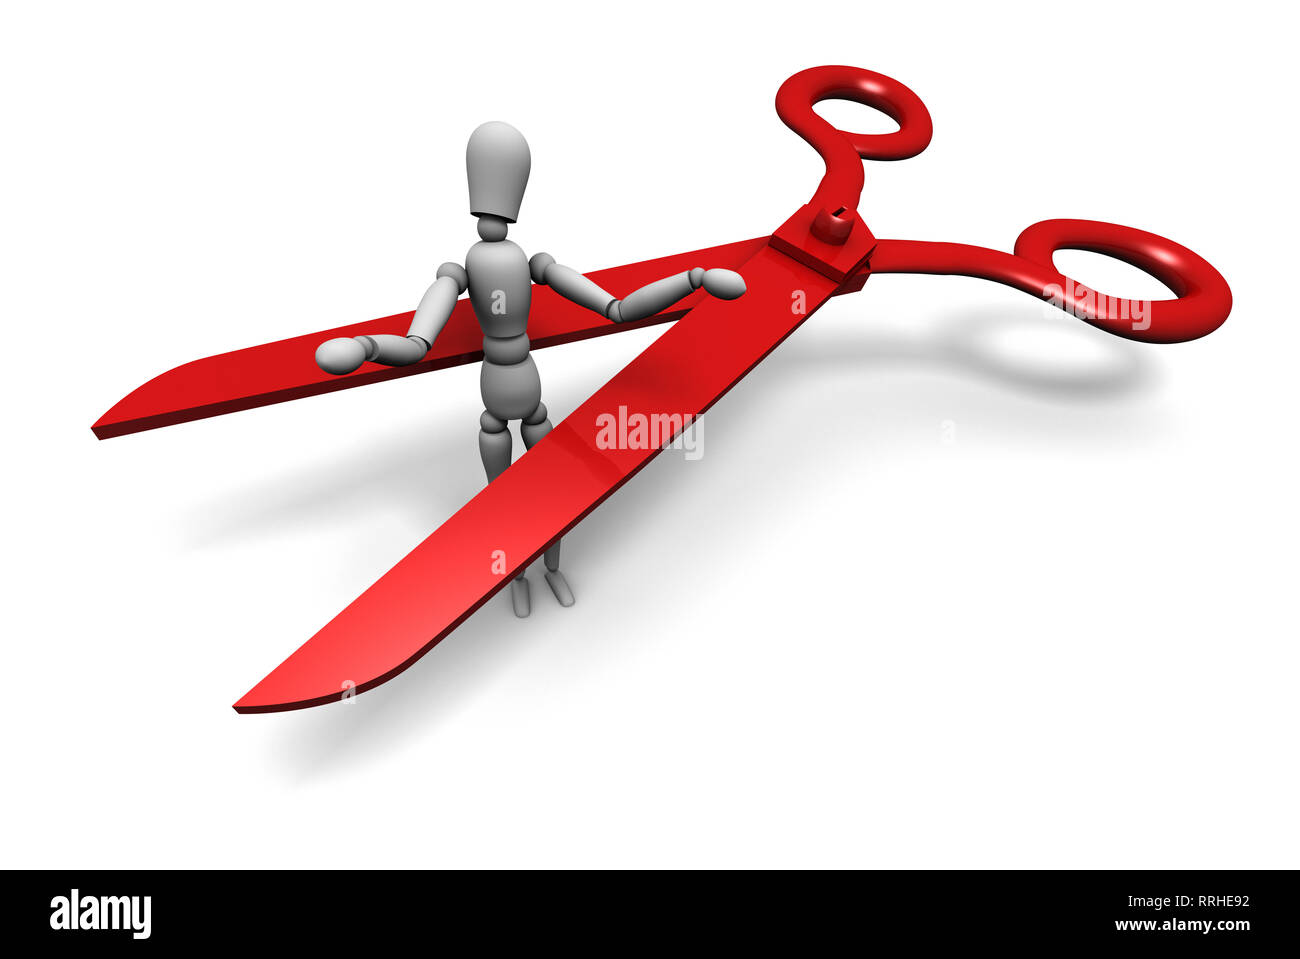 Mannequin about to be cut by a huge pair of red scissors. High resolution 3D illustration. Isolated on white background. - Stock Image